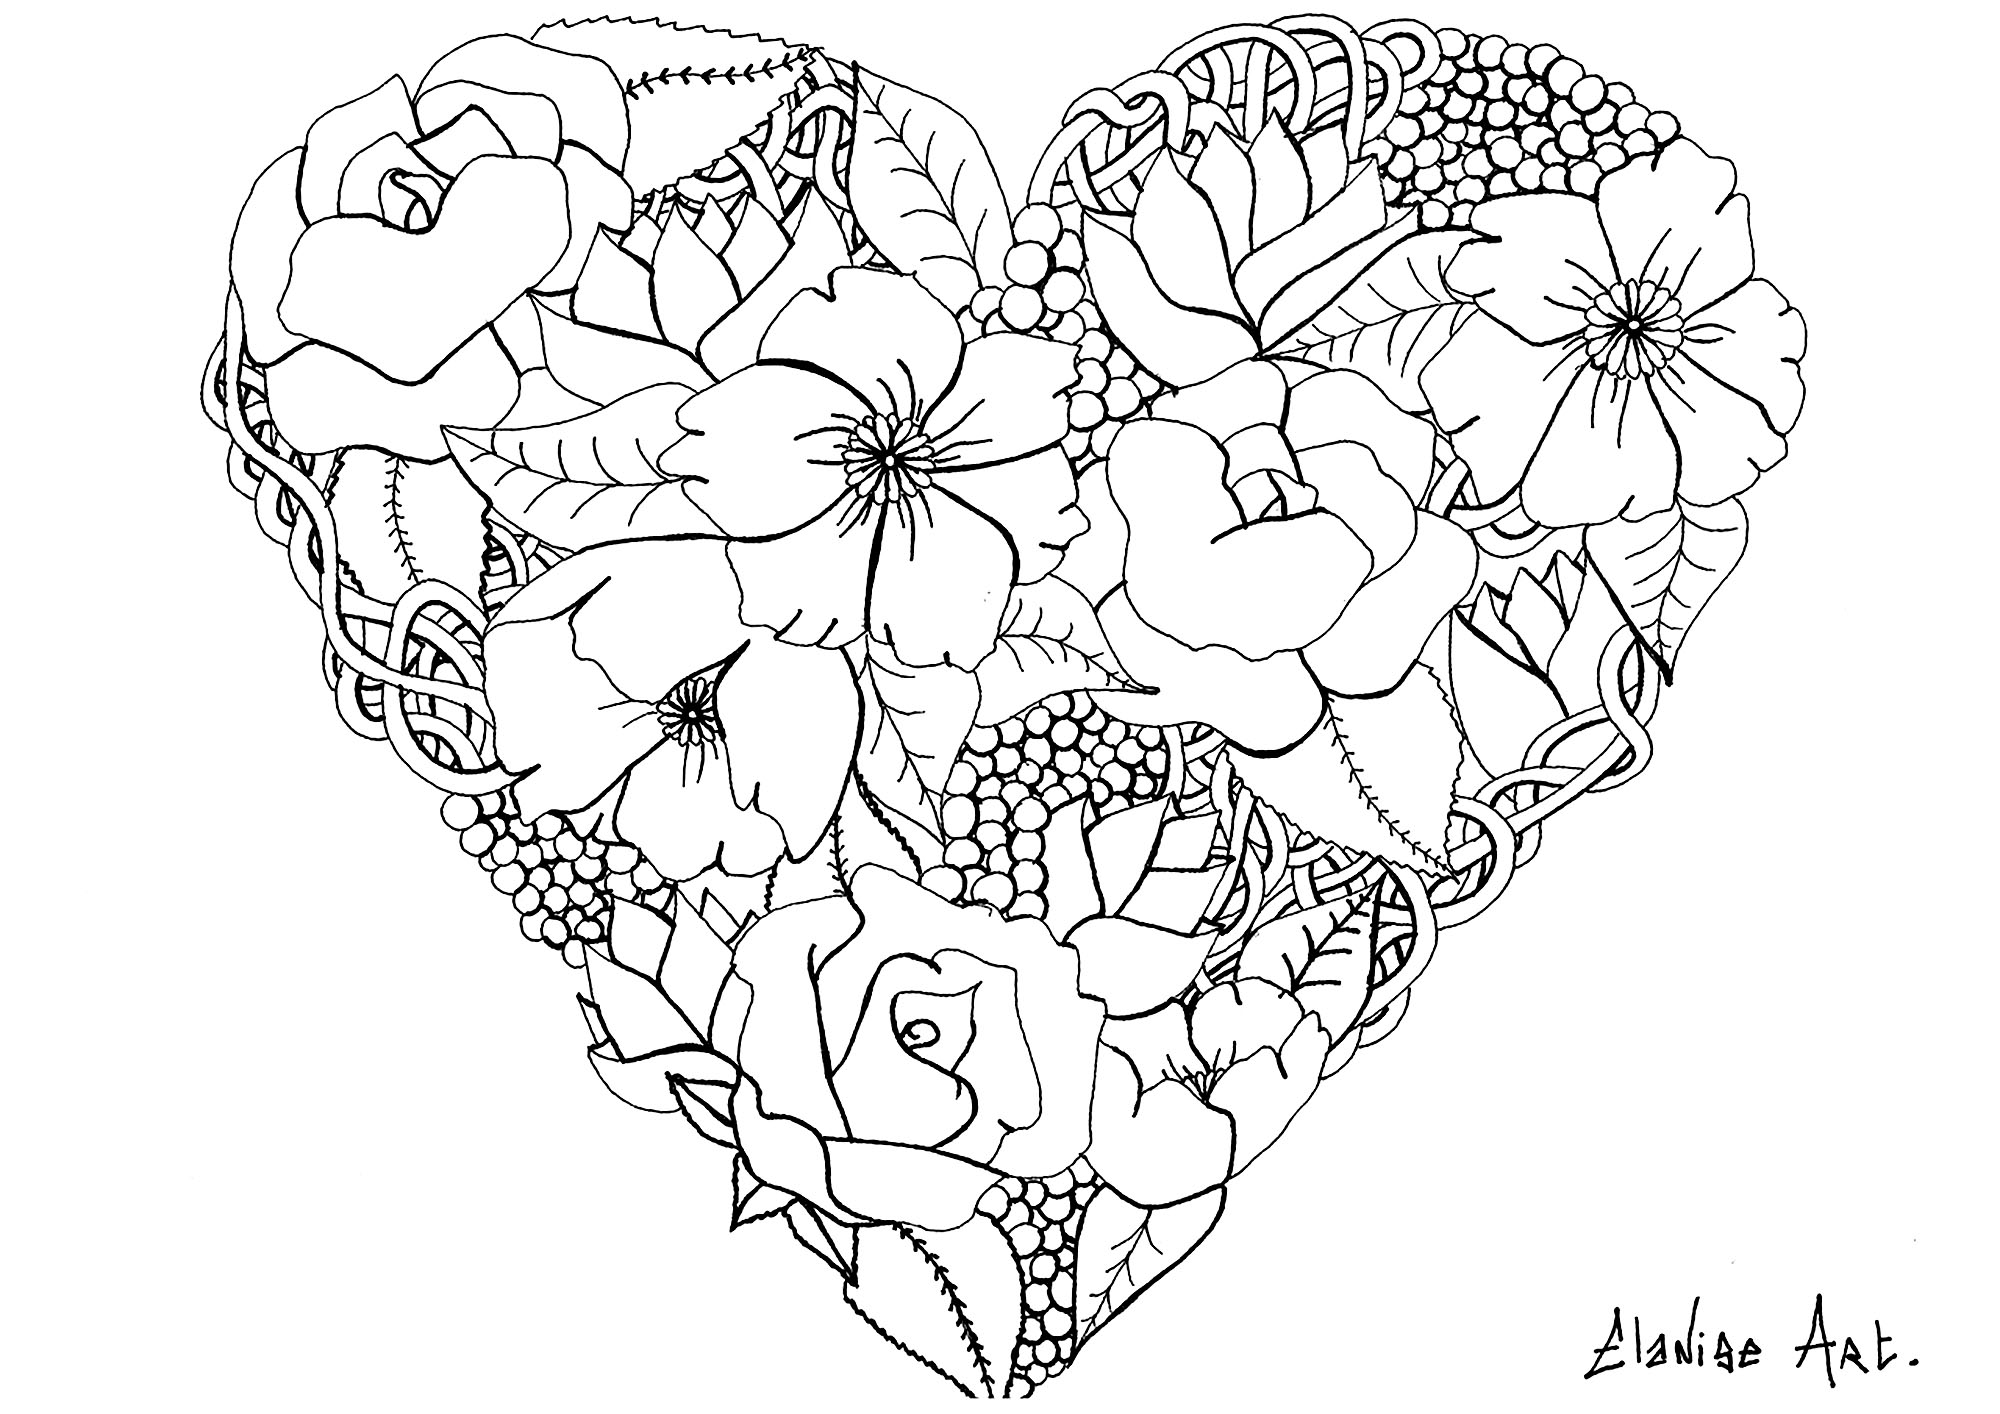 Flower designs filling a big heart